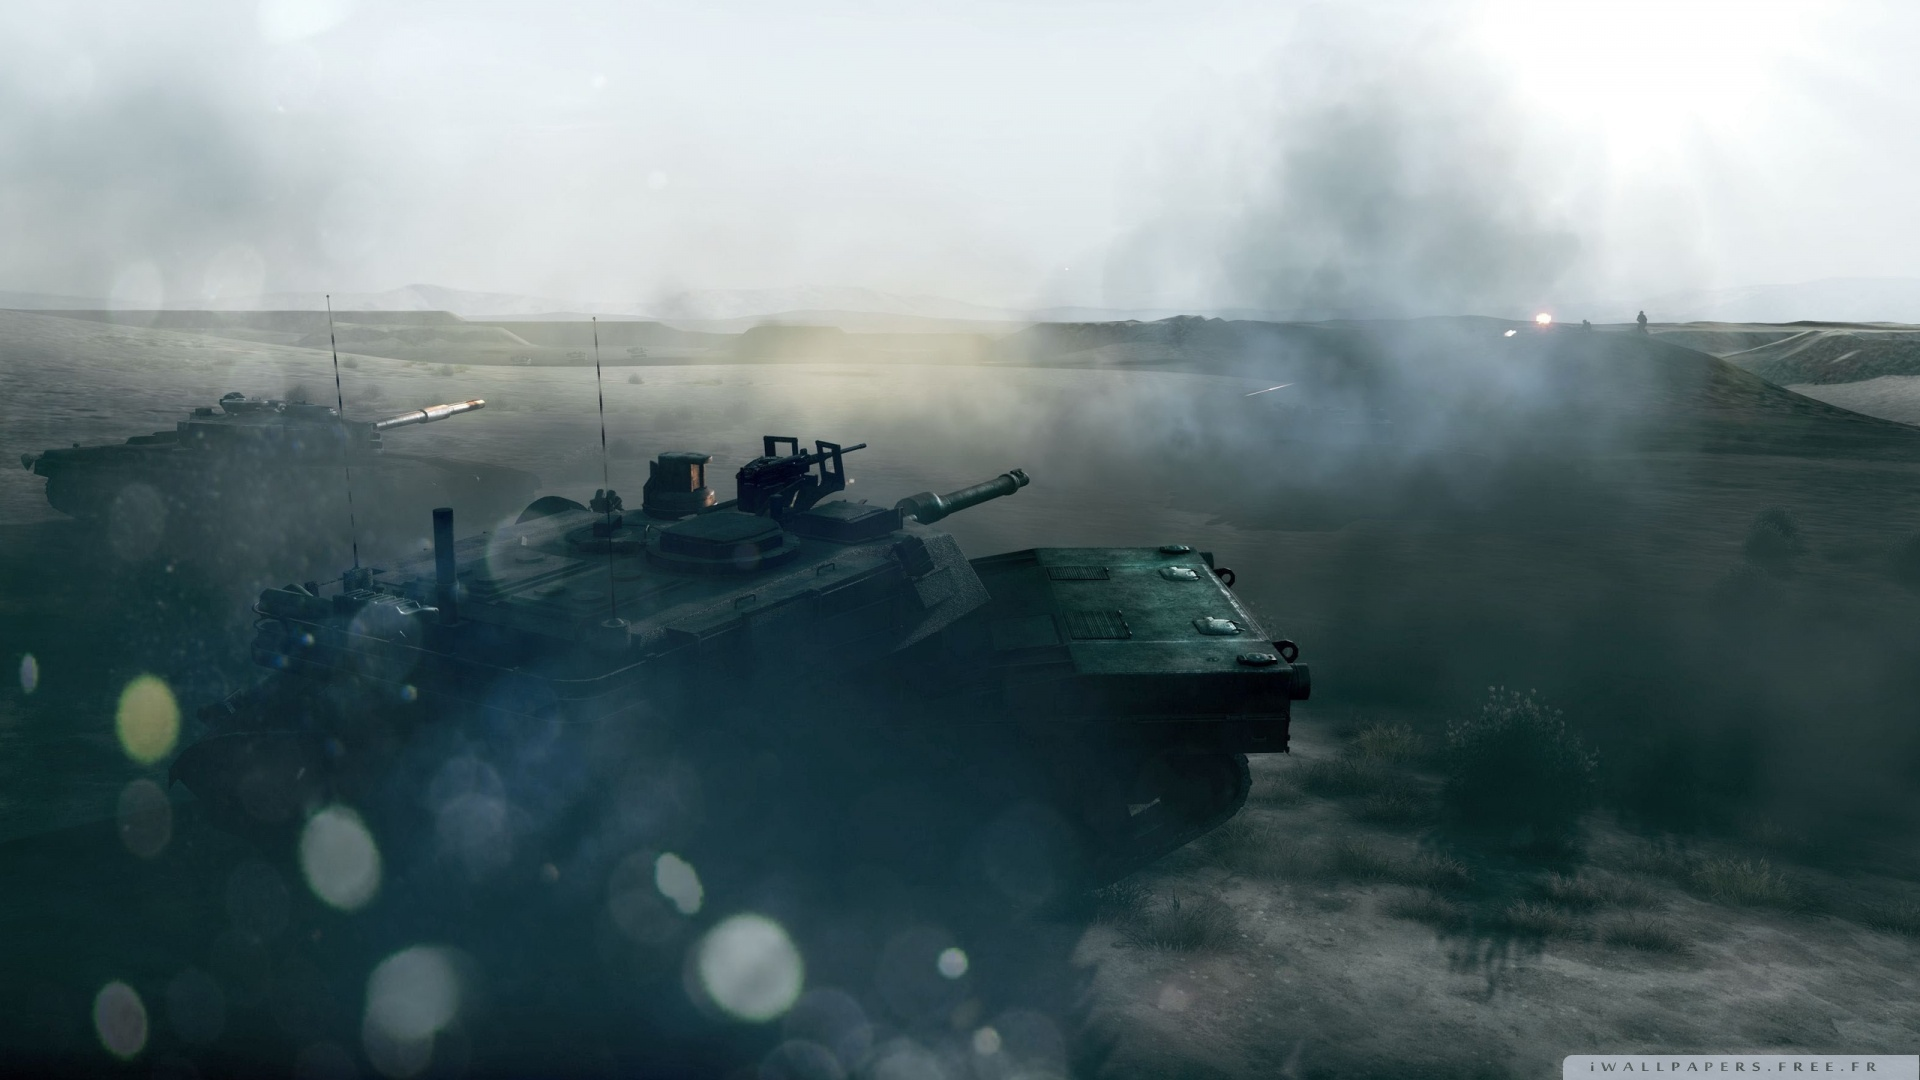 battlefield_3_tank_battle-wallpaper-1920x1080.jpg